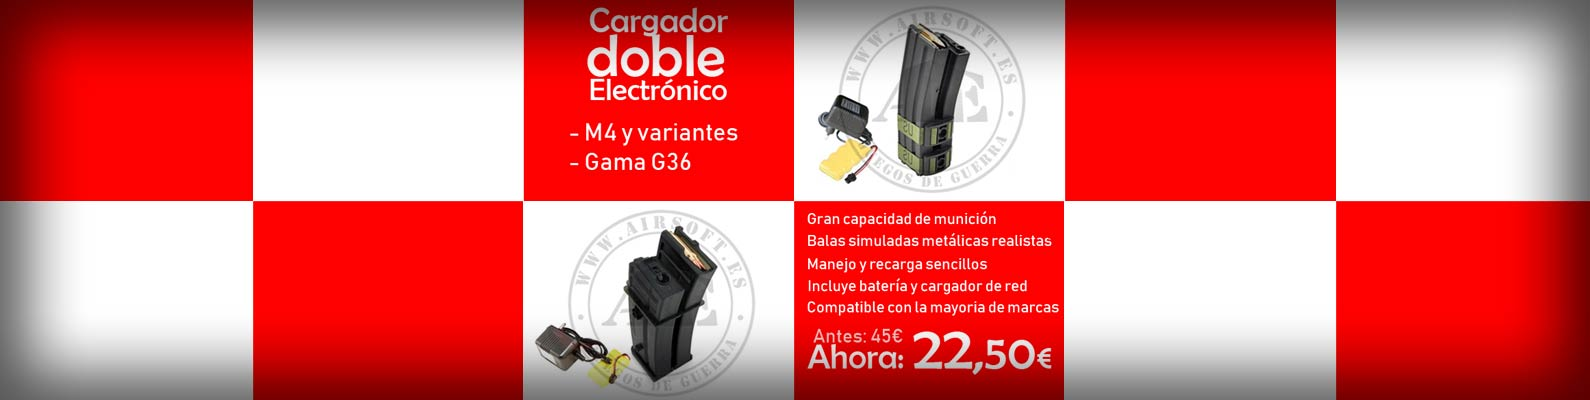 cargador-doble-electronico-slider